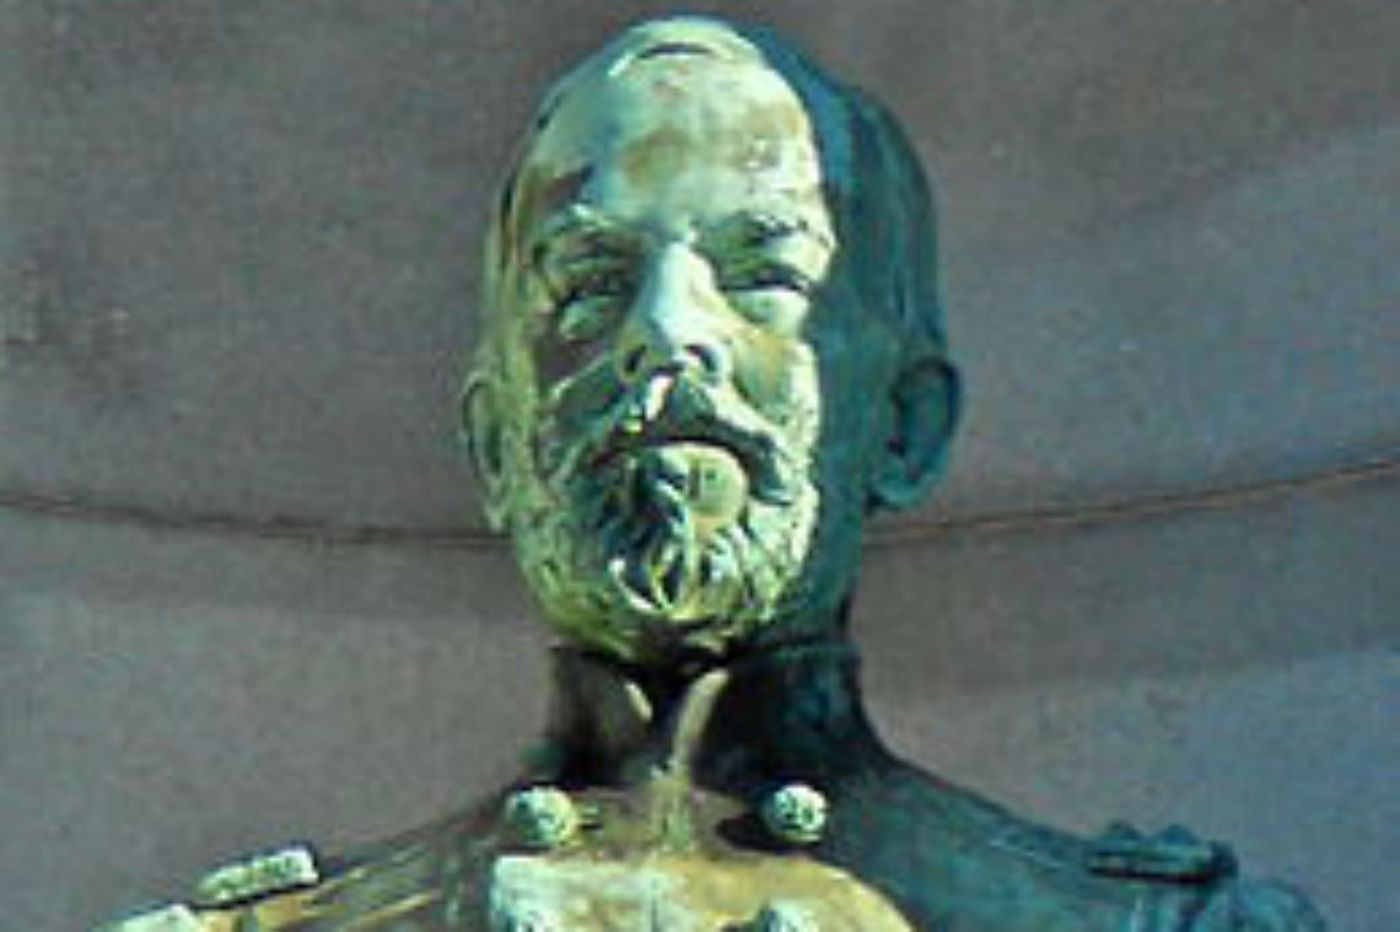 Stolen bust of Civil War general found under I-95